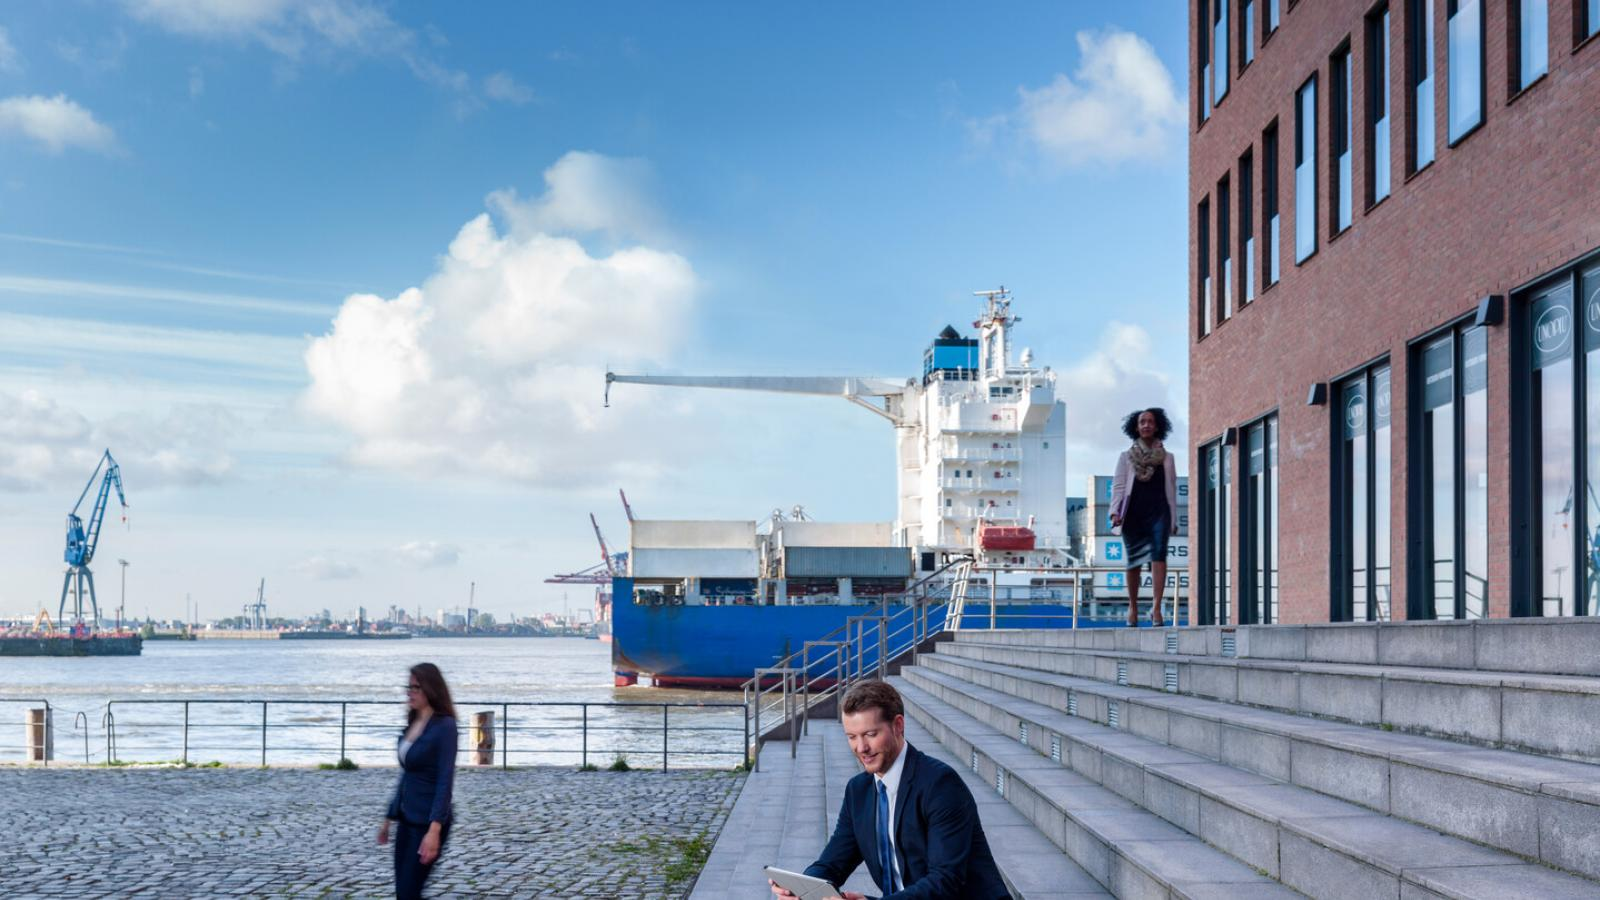 Business-Situation im Hafen